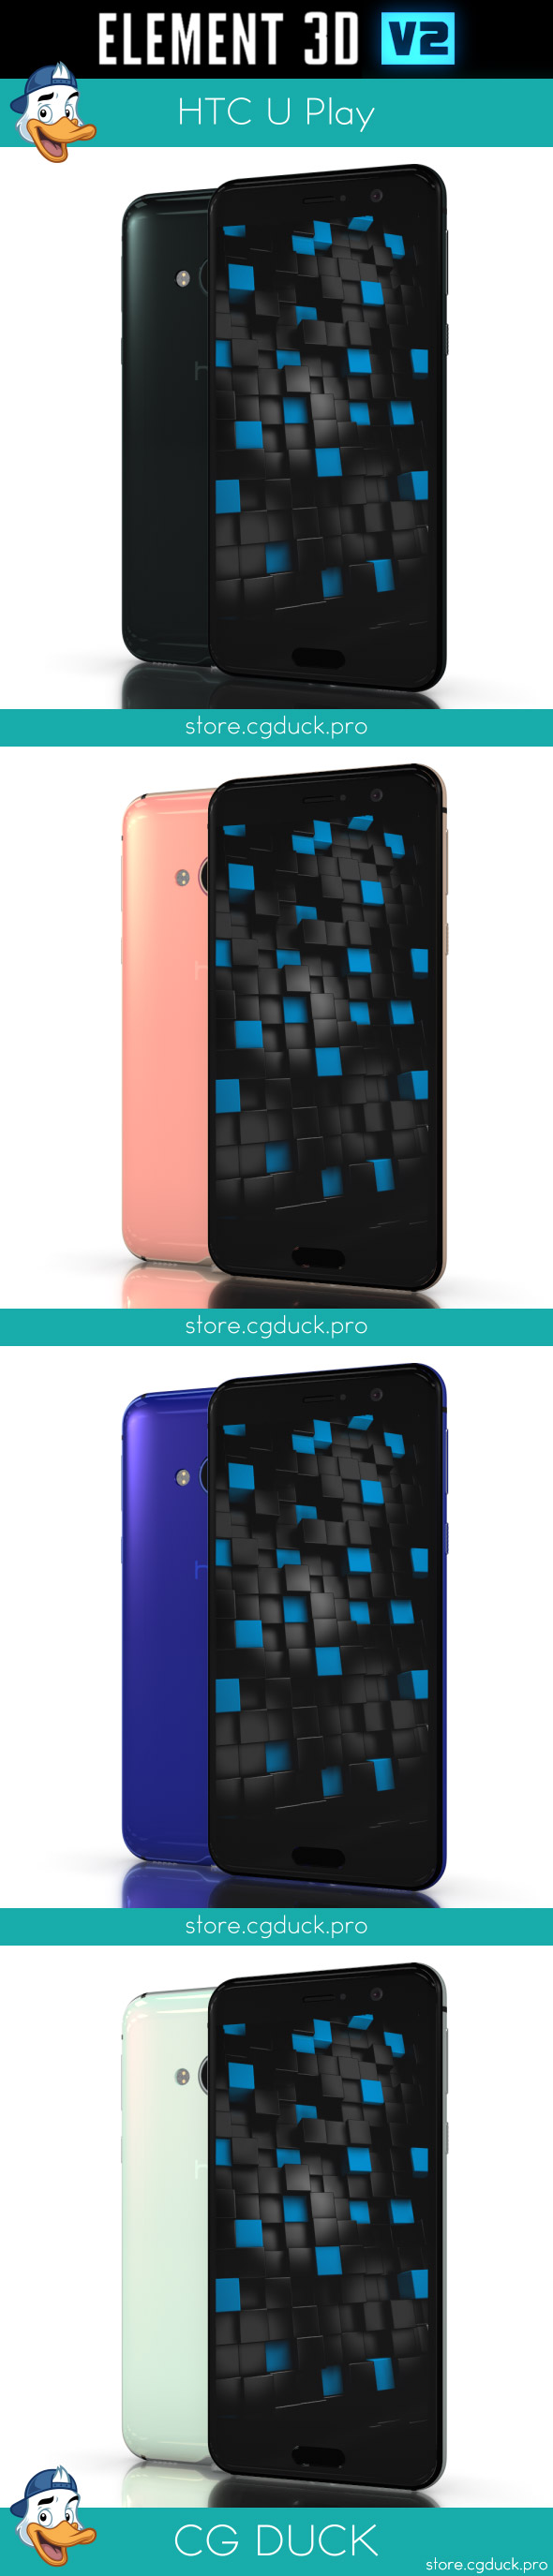 HTC U Play for Element 3D - 3DOcean Item for Sale